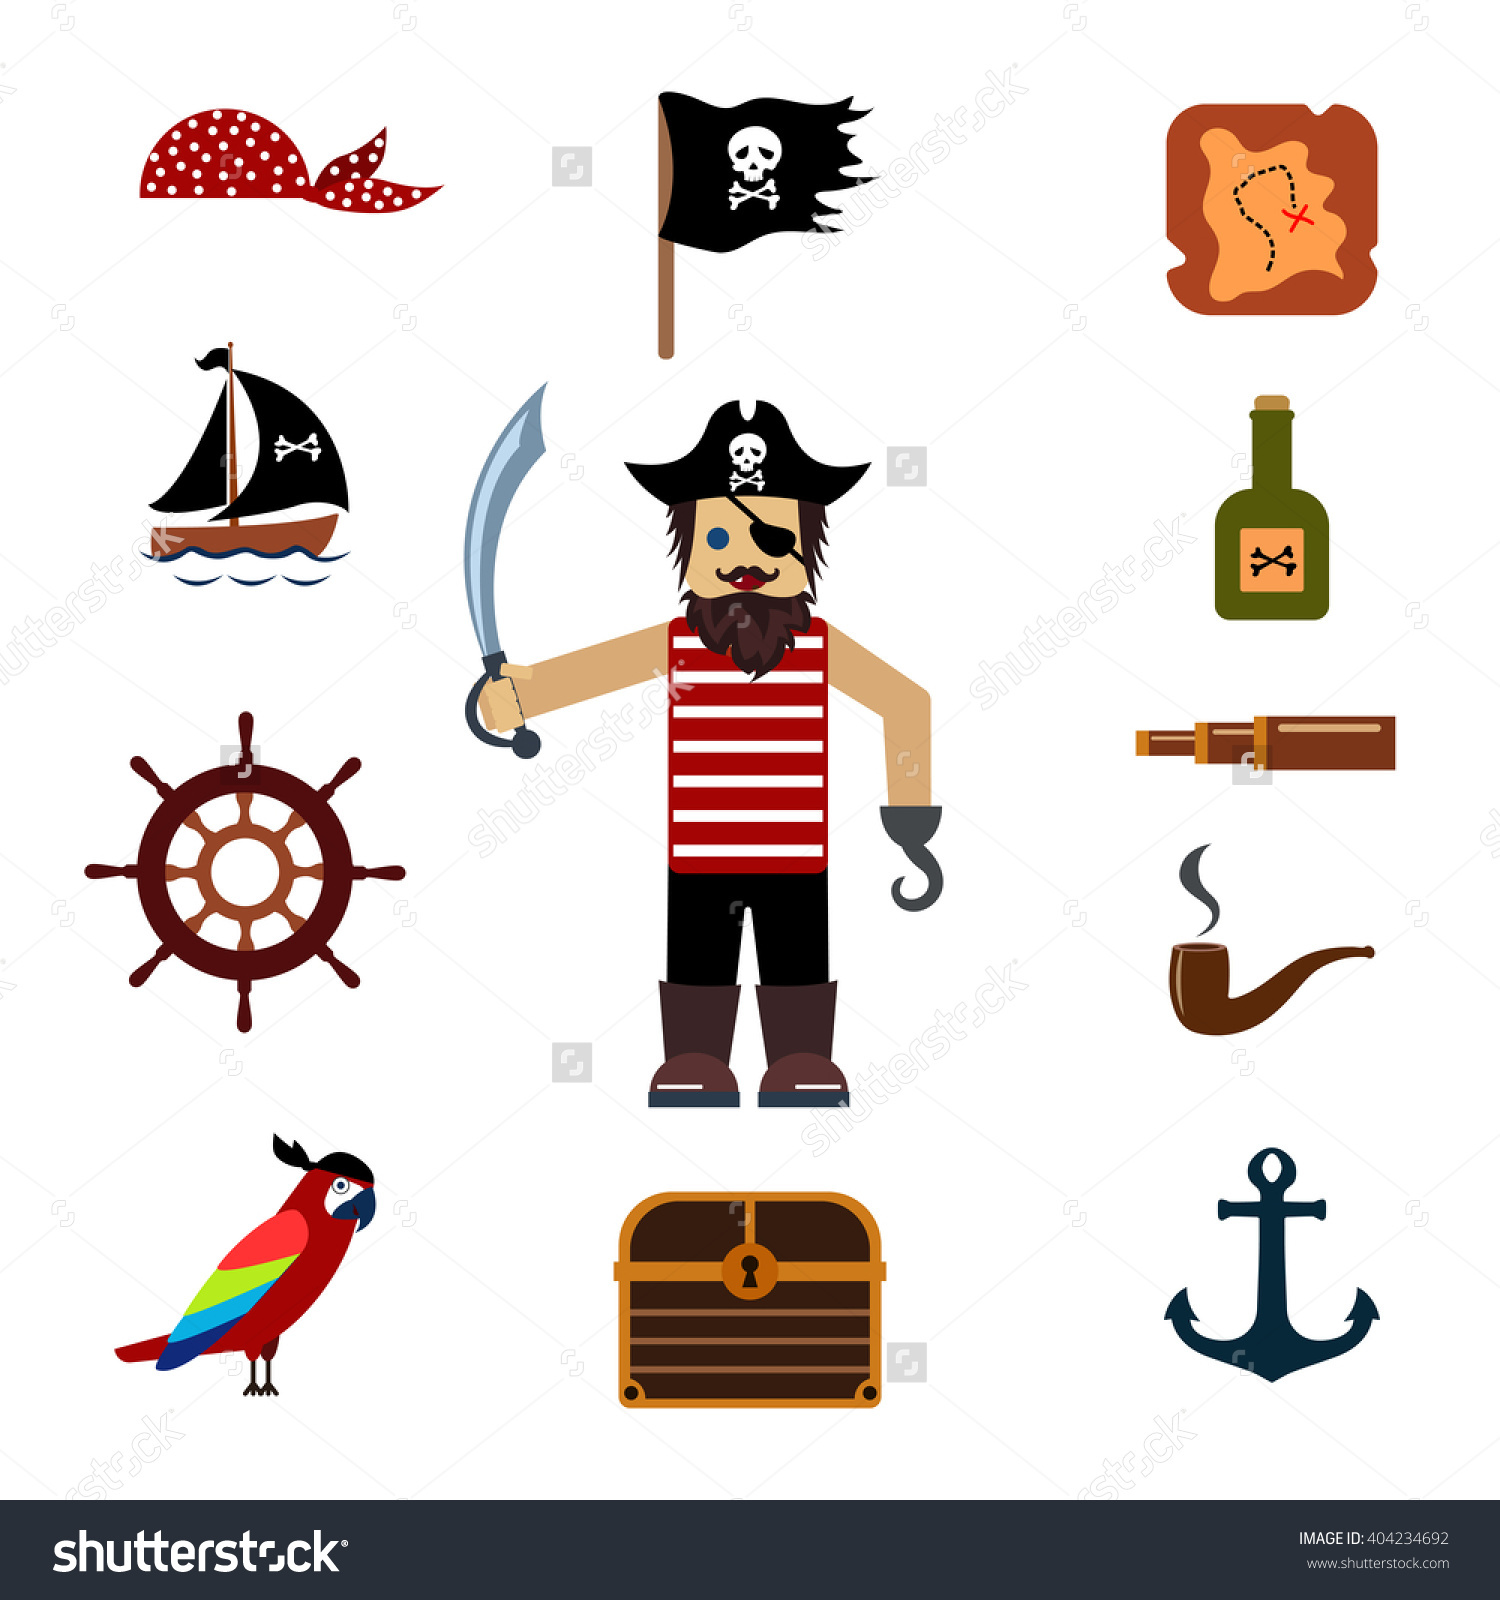 Cute Pirate Objects Collection Set Treasure Stock Vector 404234692.